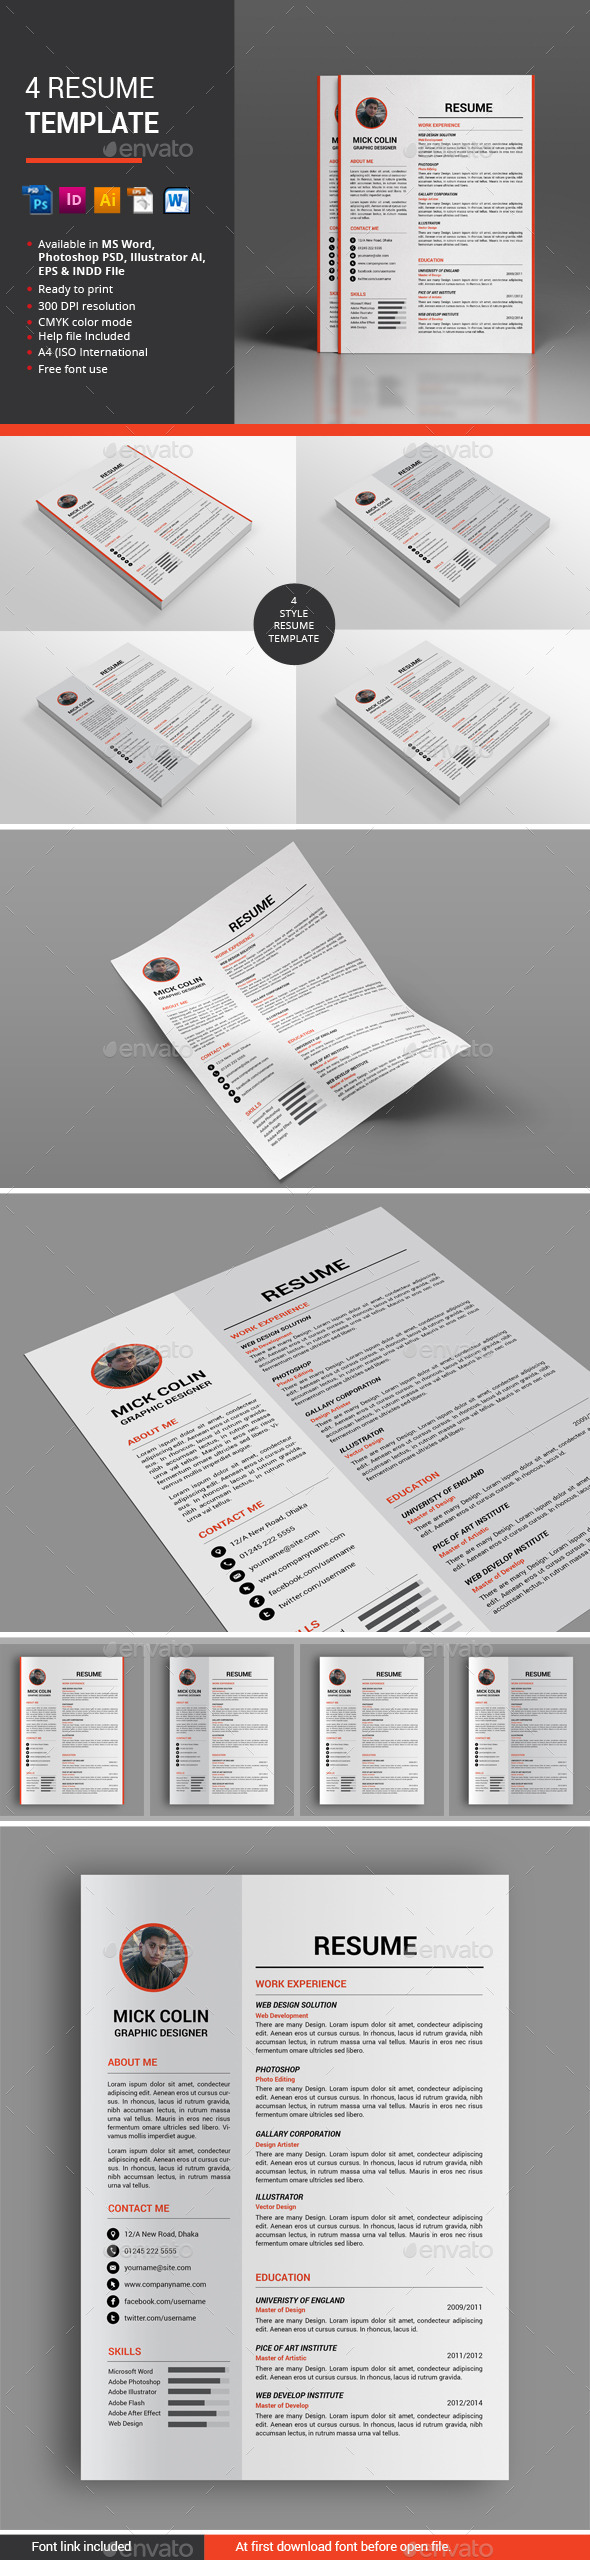 4 Resume Template - Resumes Stationery